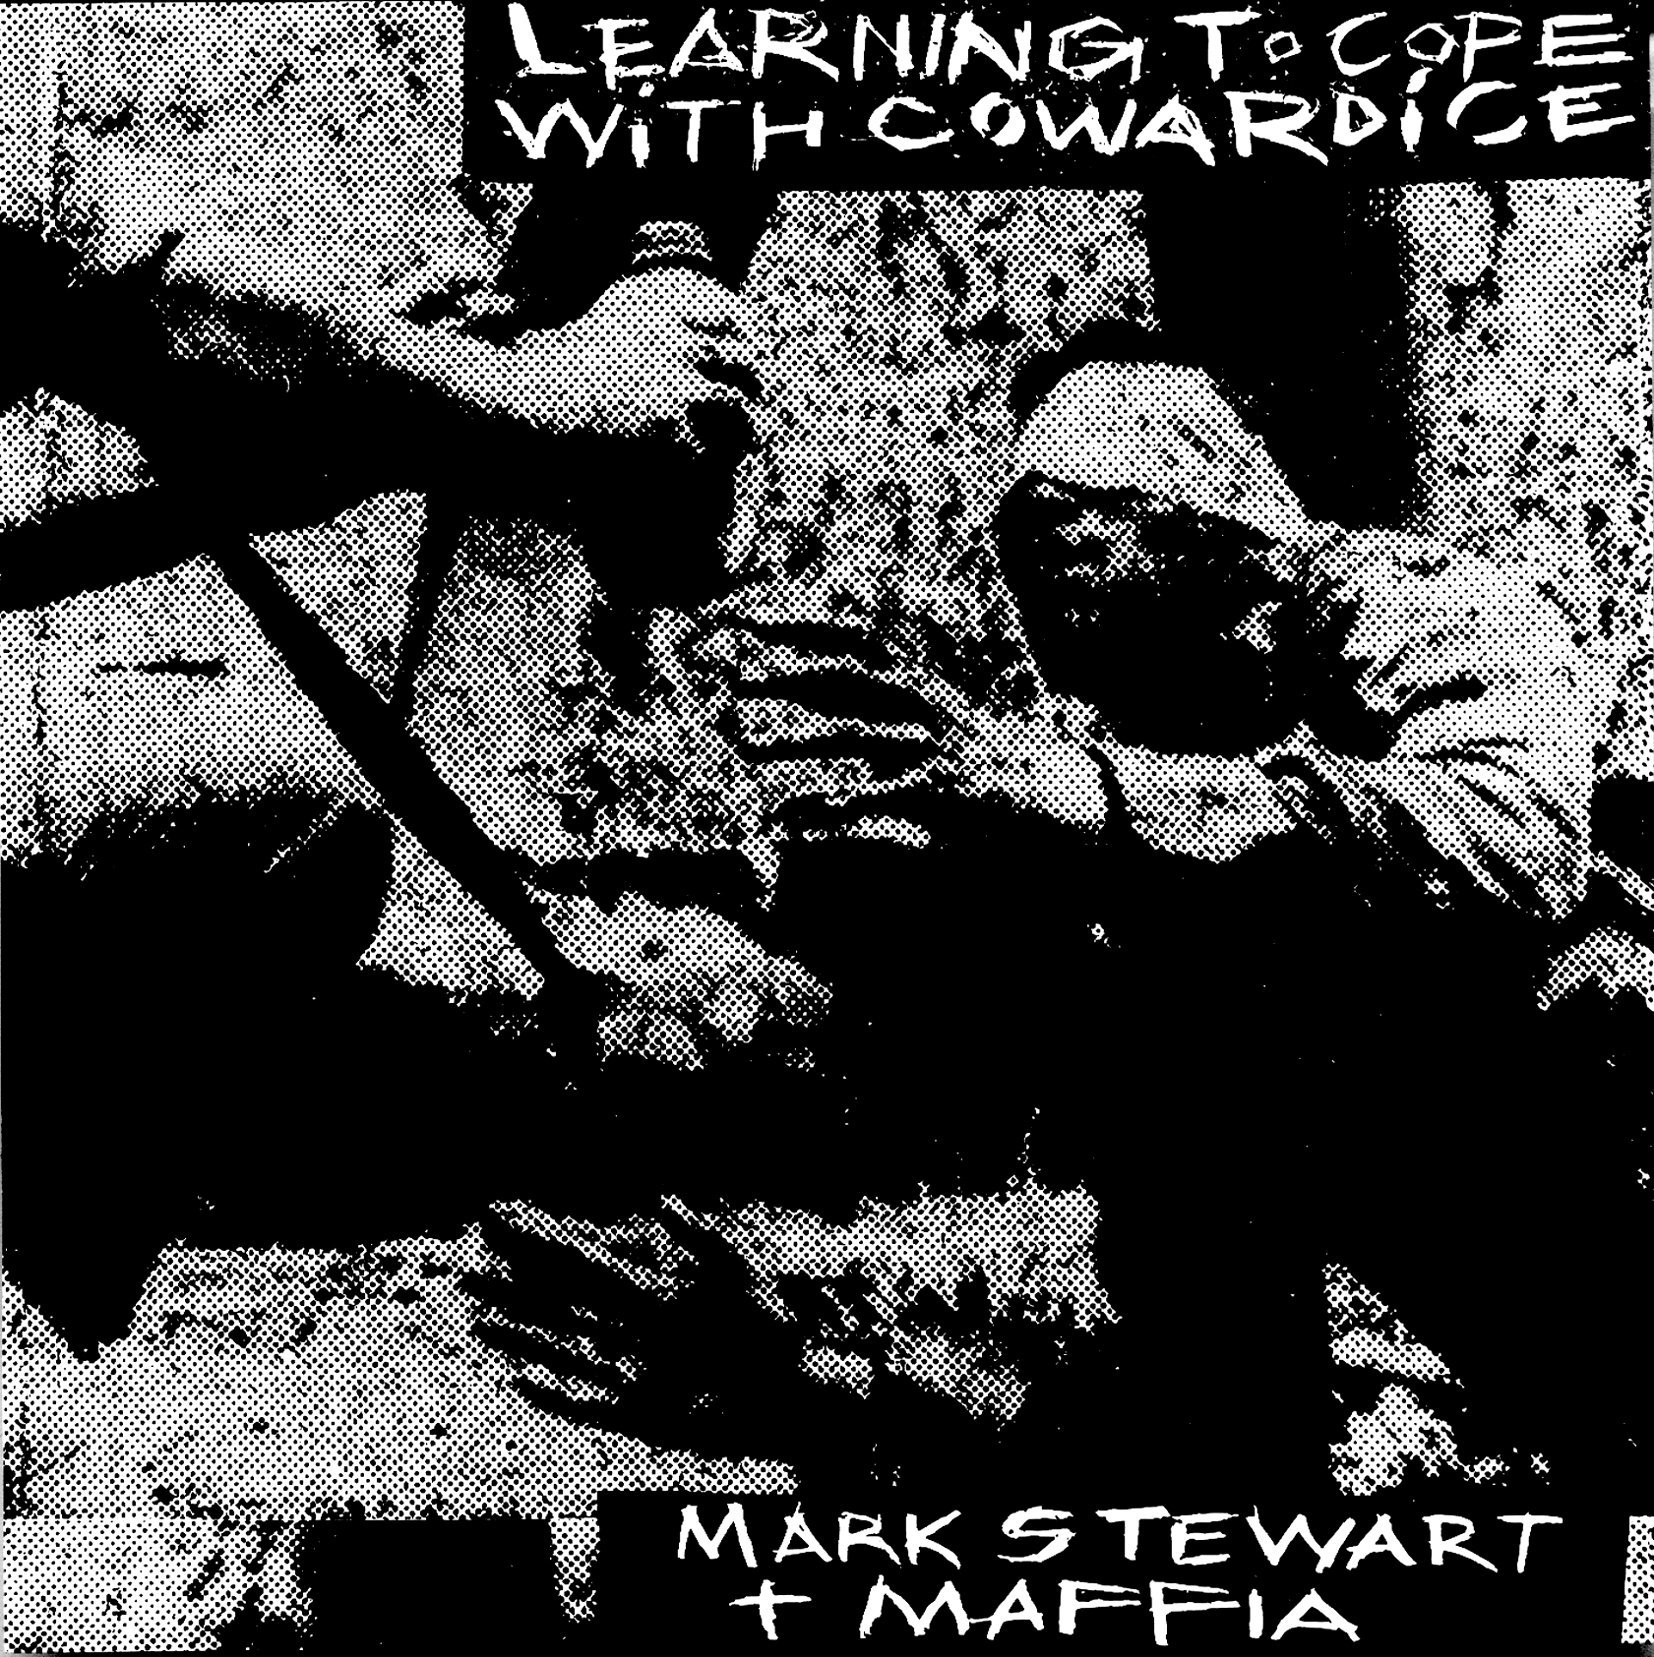 News –  Mark Stewart and The Maffia- Learning to Cope With Cowardice